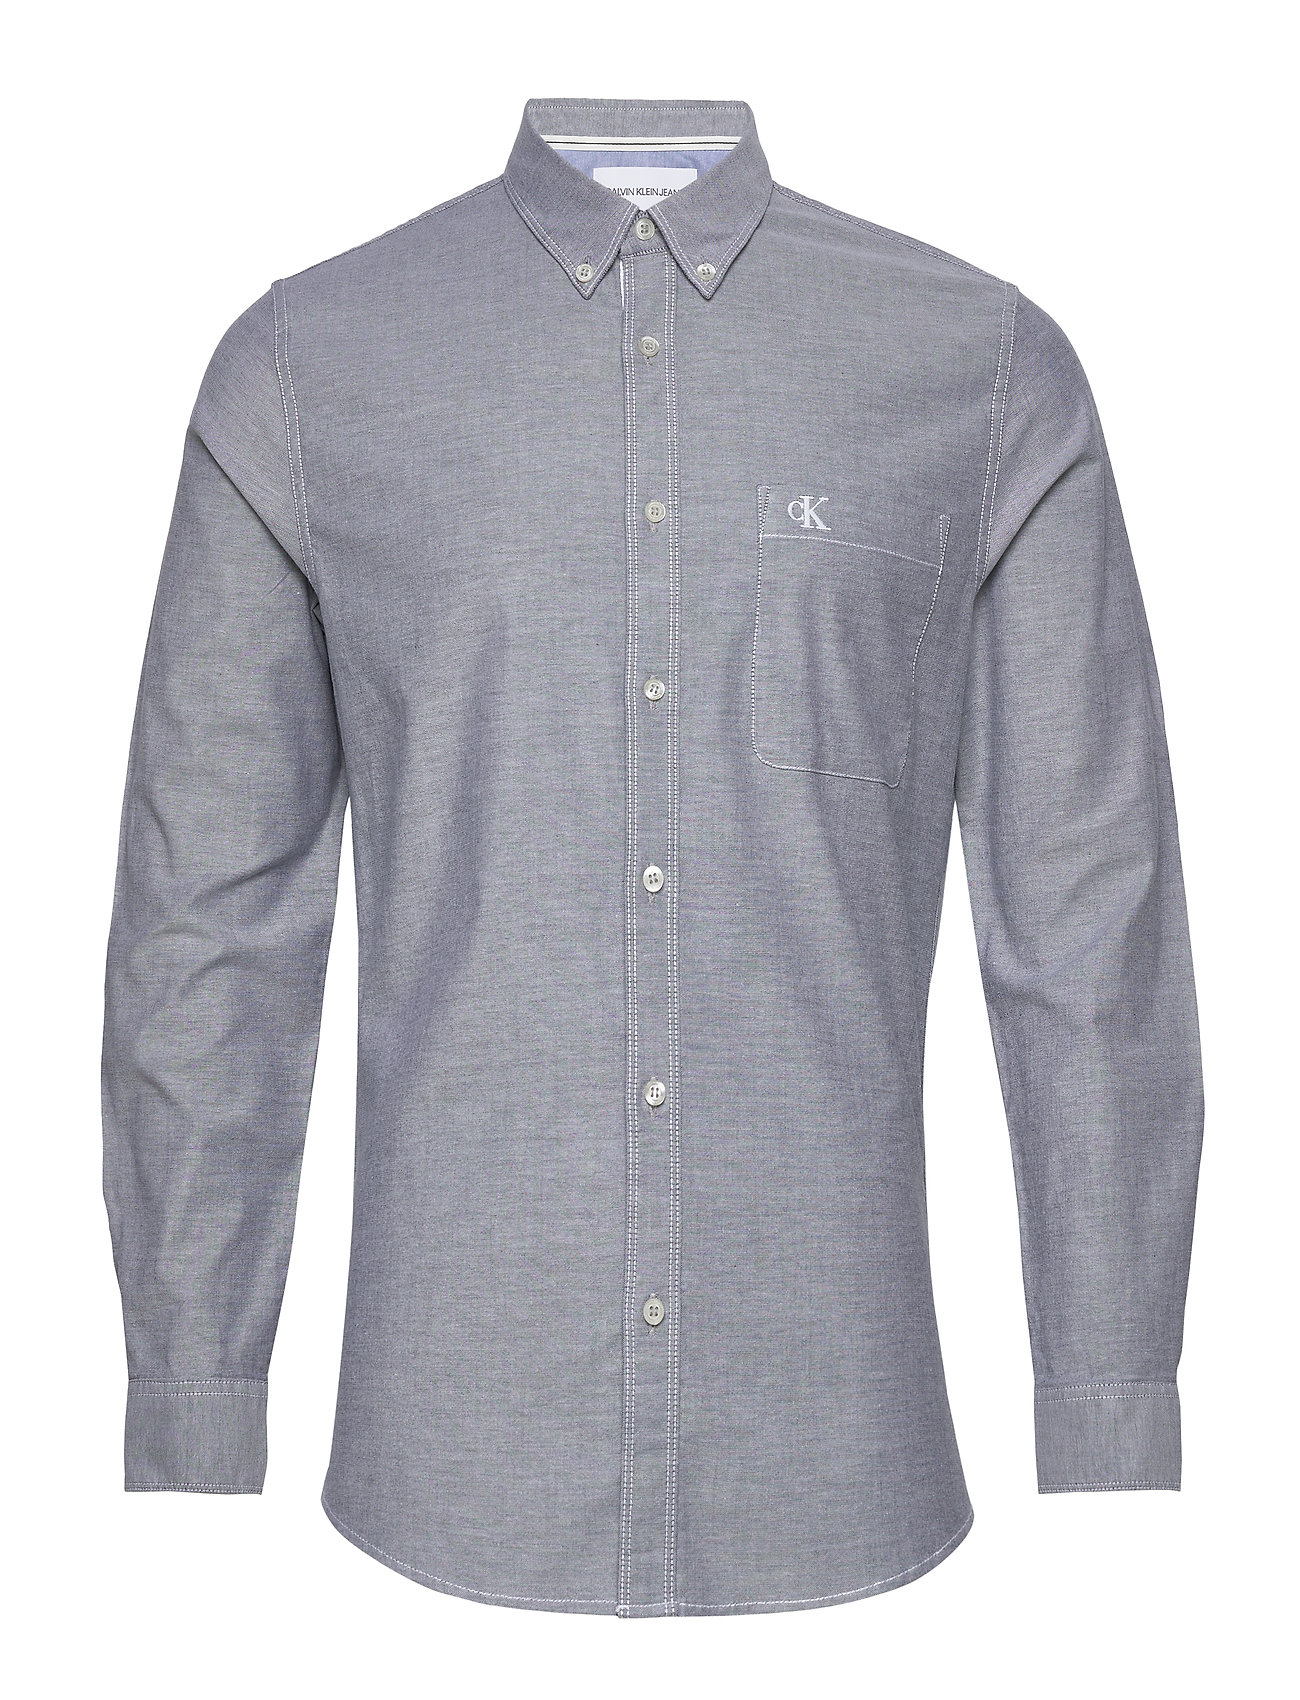 Image of Chambray Slim Stretch Skjorte Casual Grå Calvin Klein Jeans (3424647781)